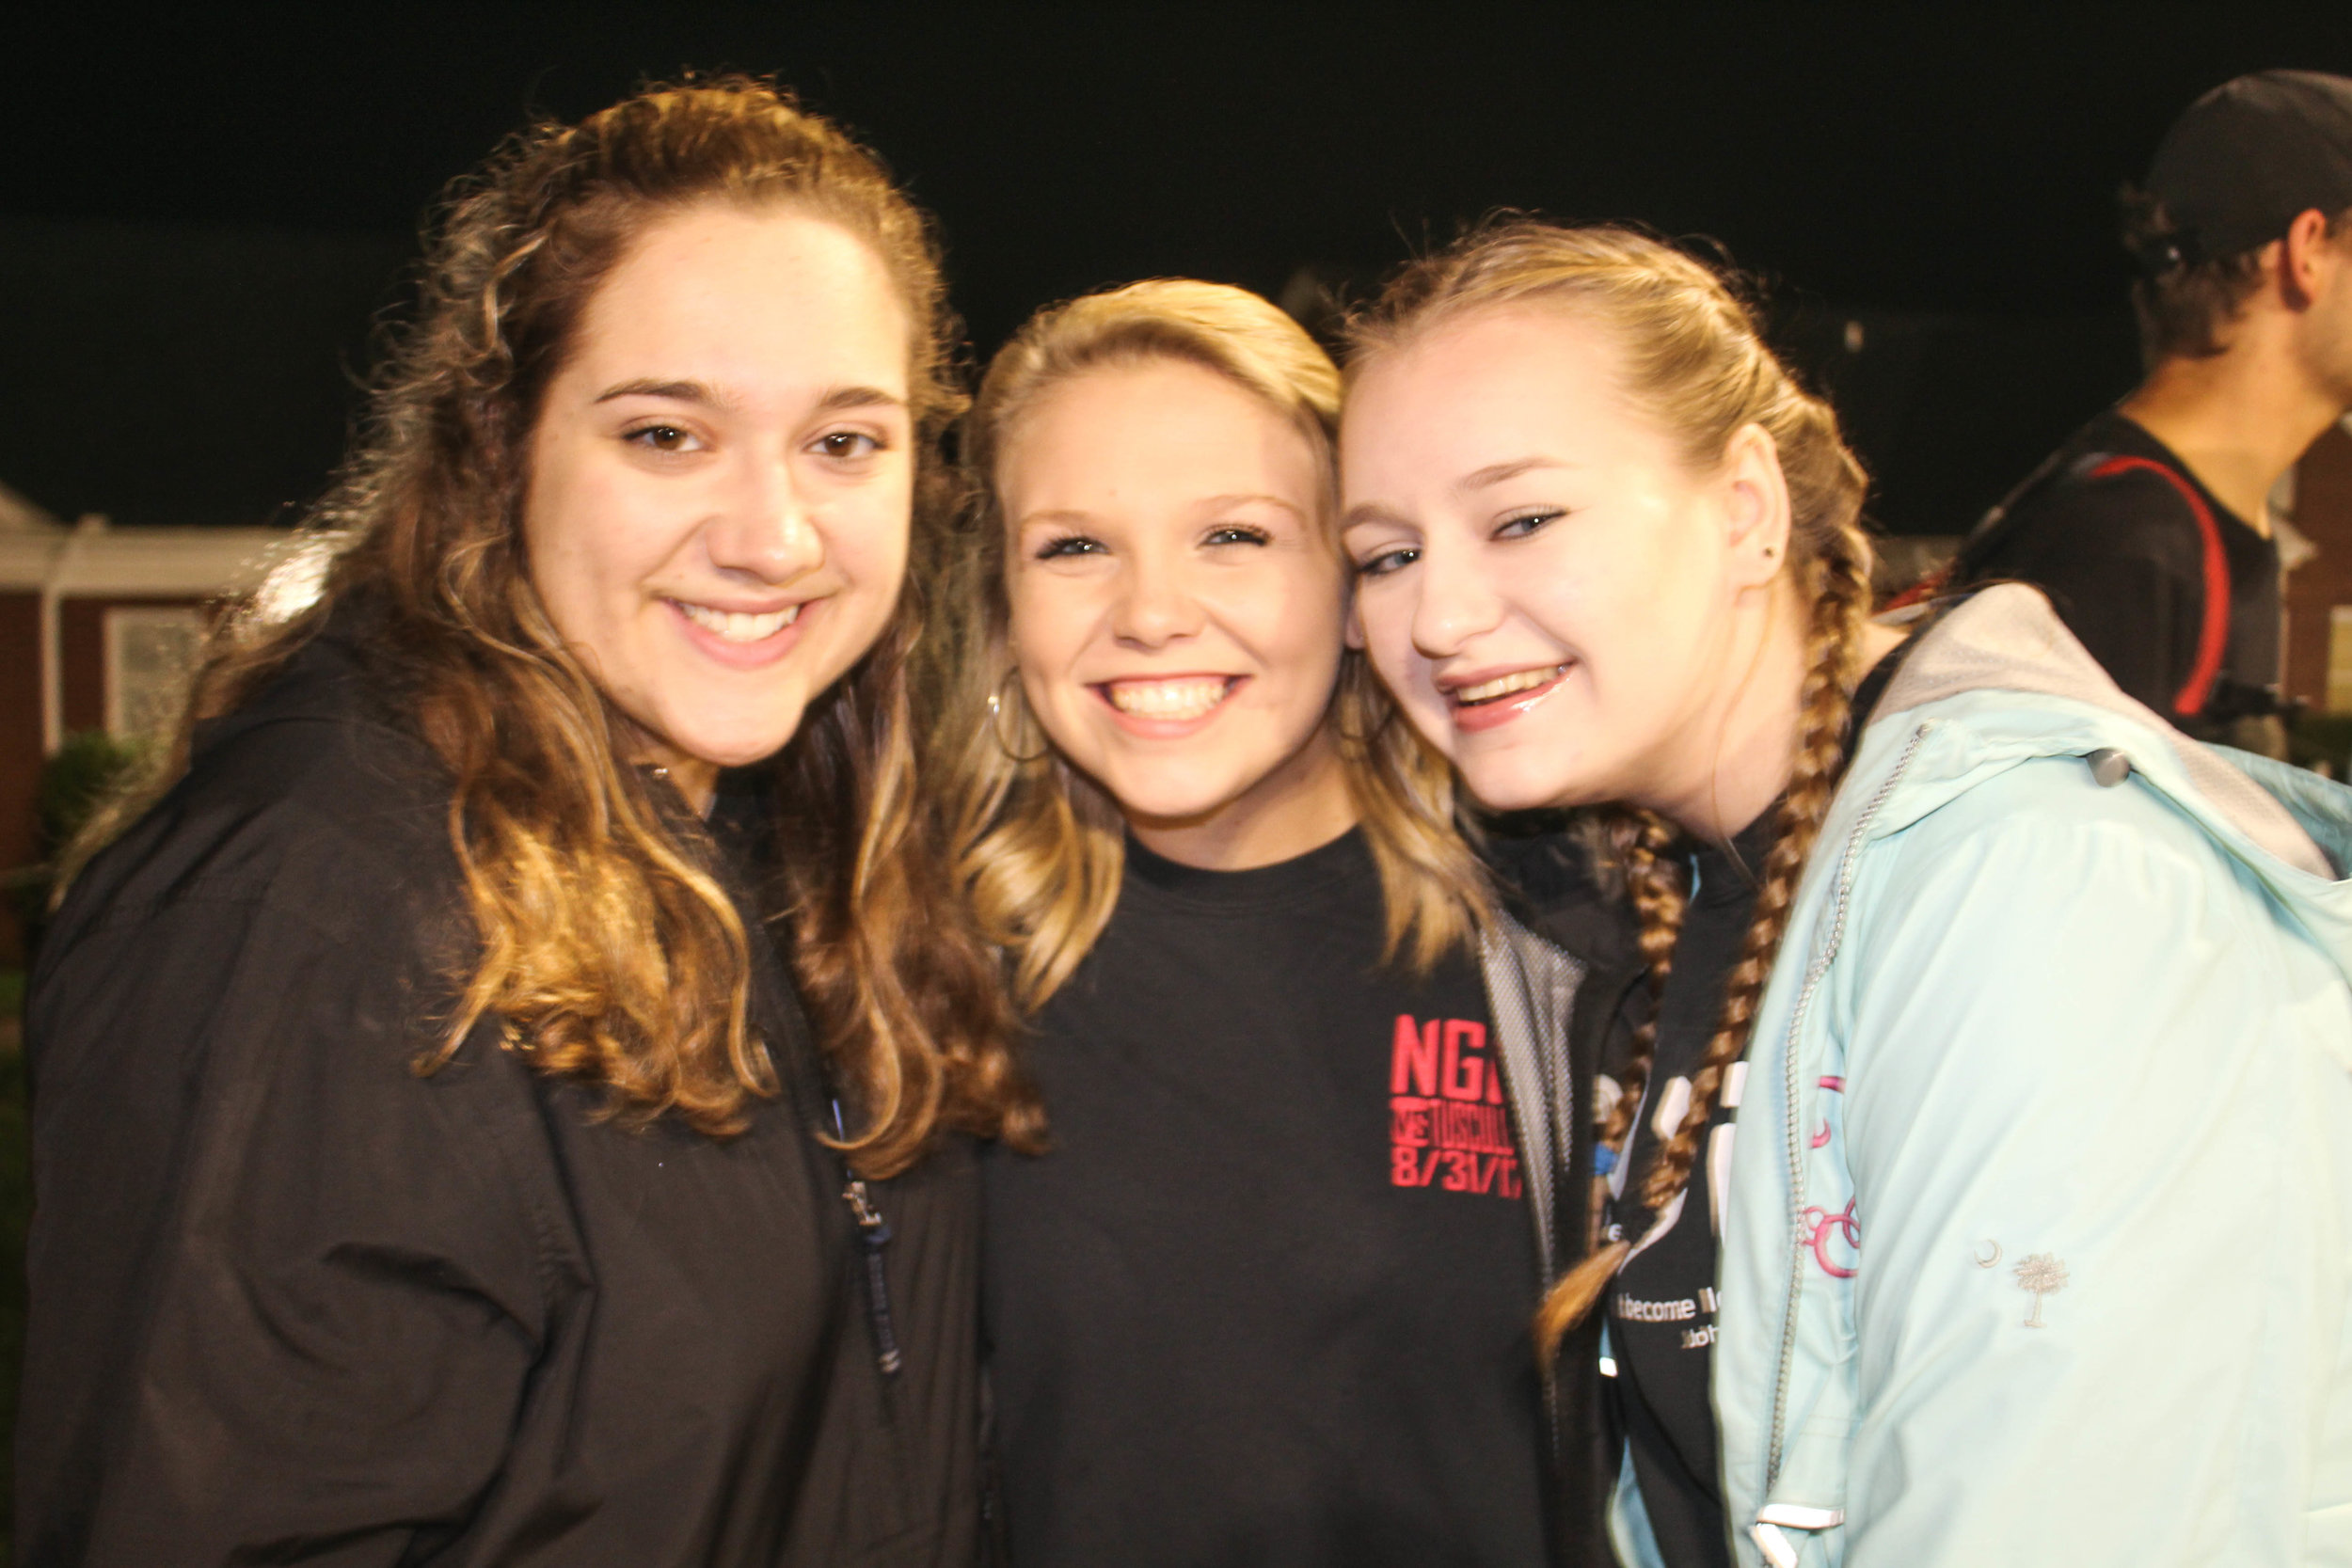 Sophomore BCM members Nicole Pollard, Mary Collins and Kelsey Truluck show their support for the BCM volleyball team as the watch them play.